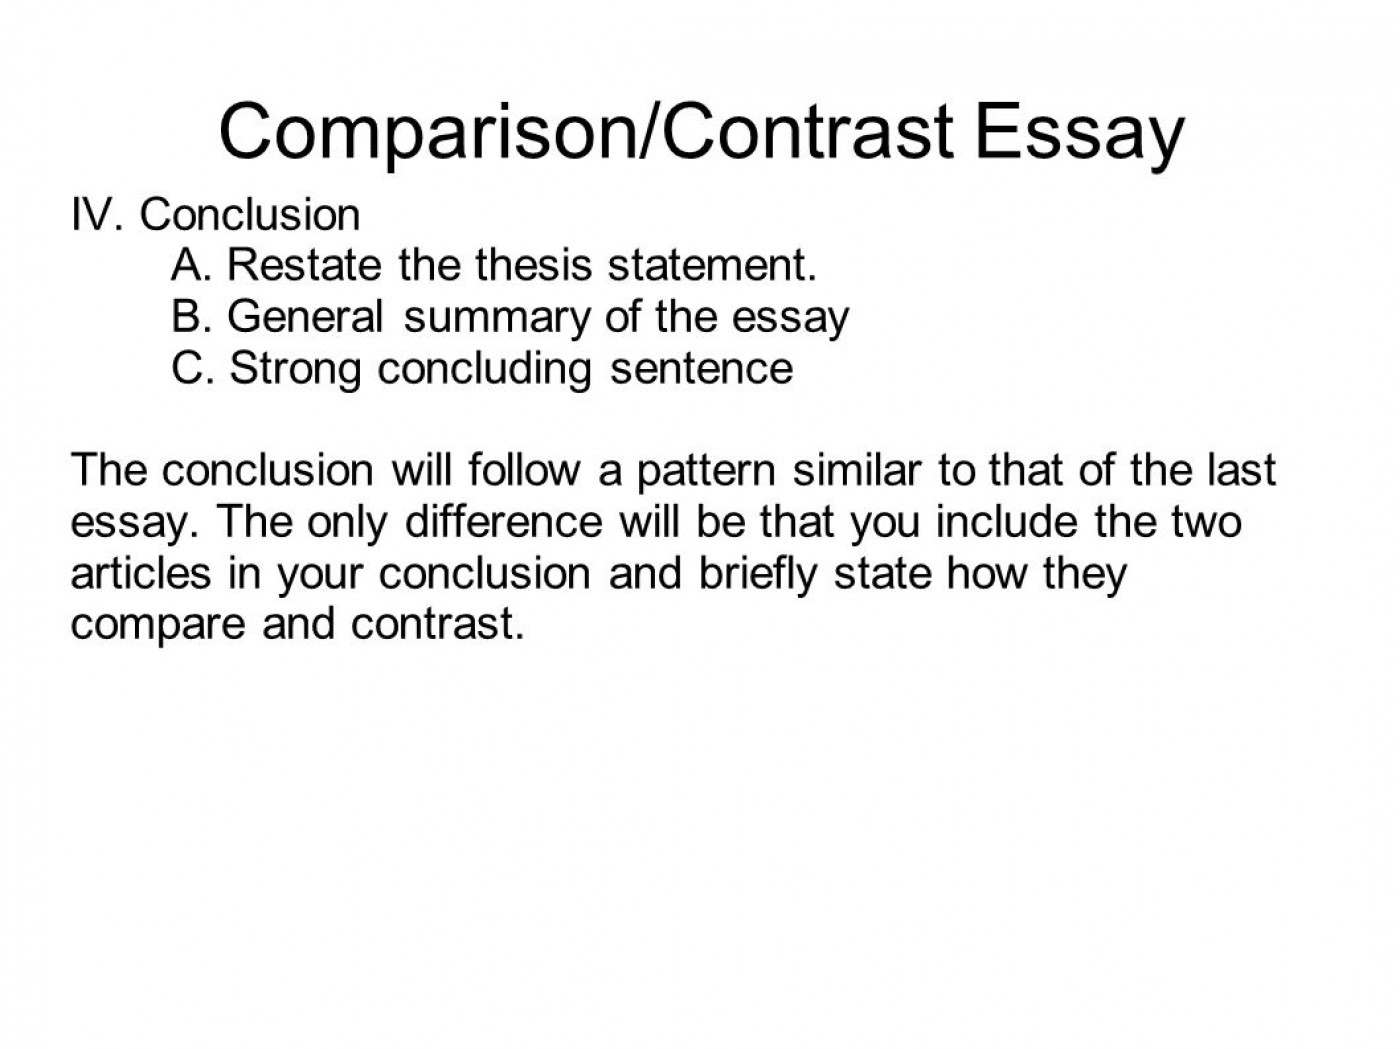 010 Good Compare And Contrast Essays Conclusion Paragraph For How To Write An Essay Sli Analysis Argumentative Art Academic Informative Sentence Opinion Unbelievable Title Generator Examples High School Titles 1400